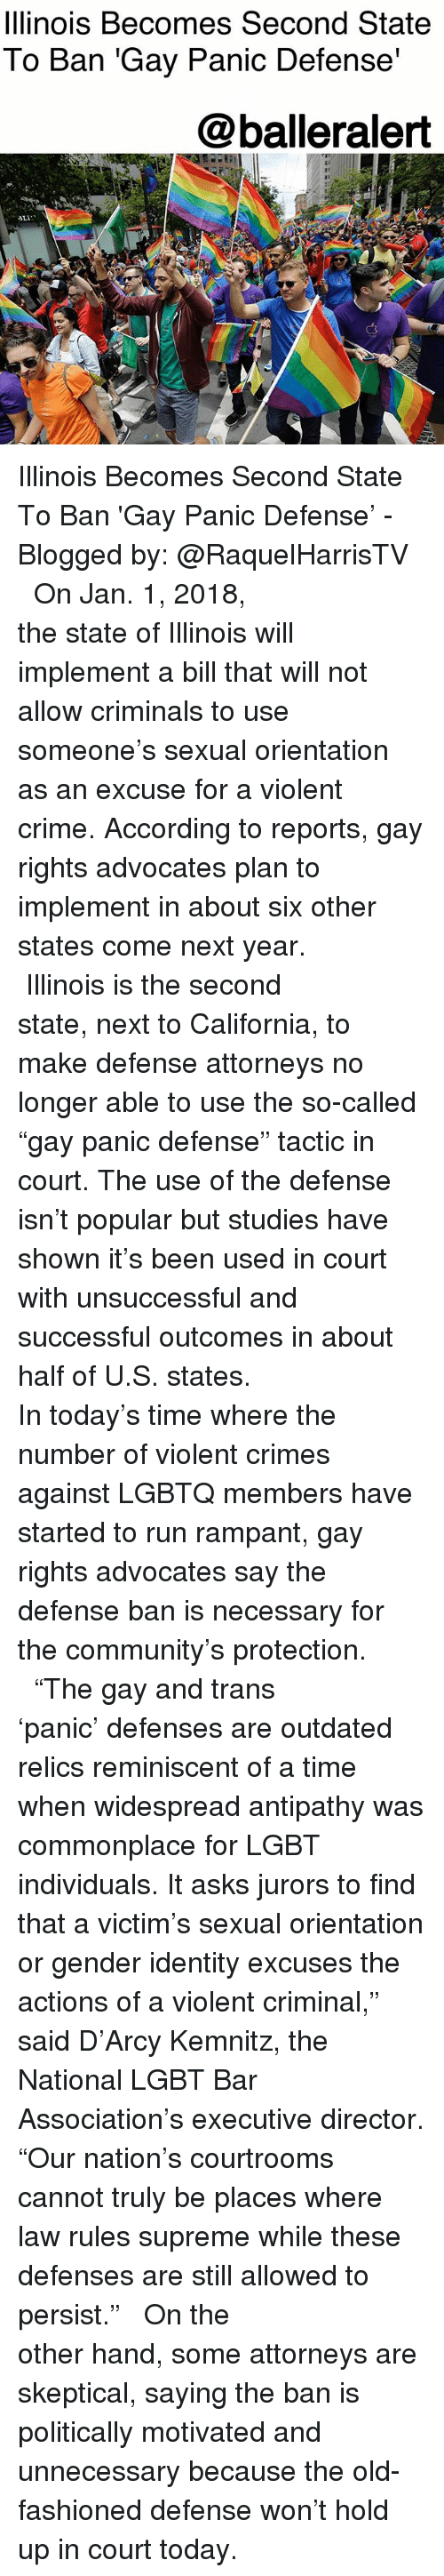 from Jamison defeating the gay panic defense